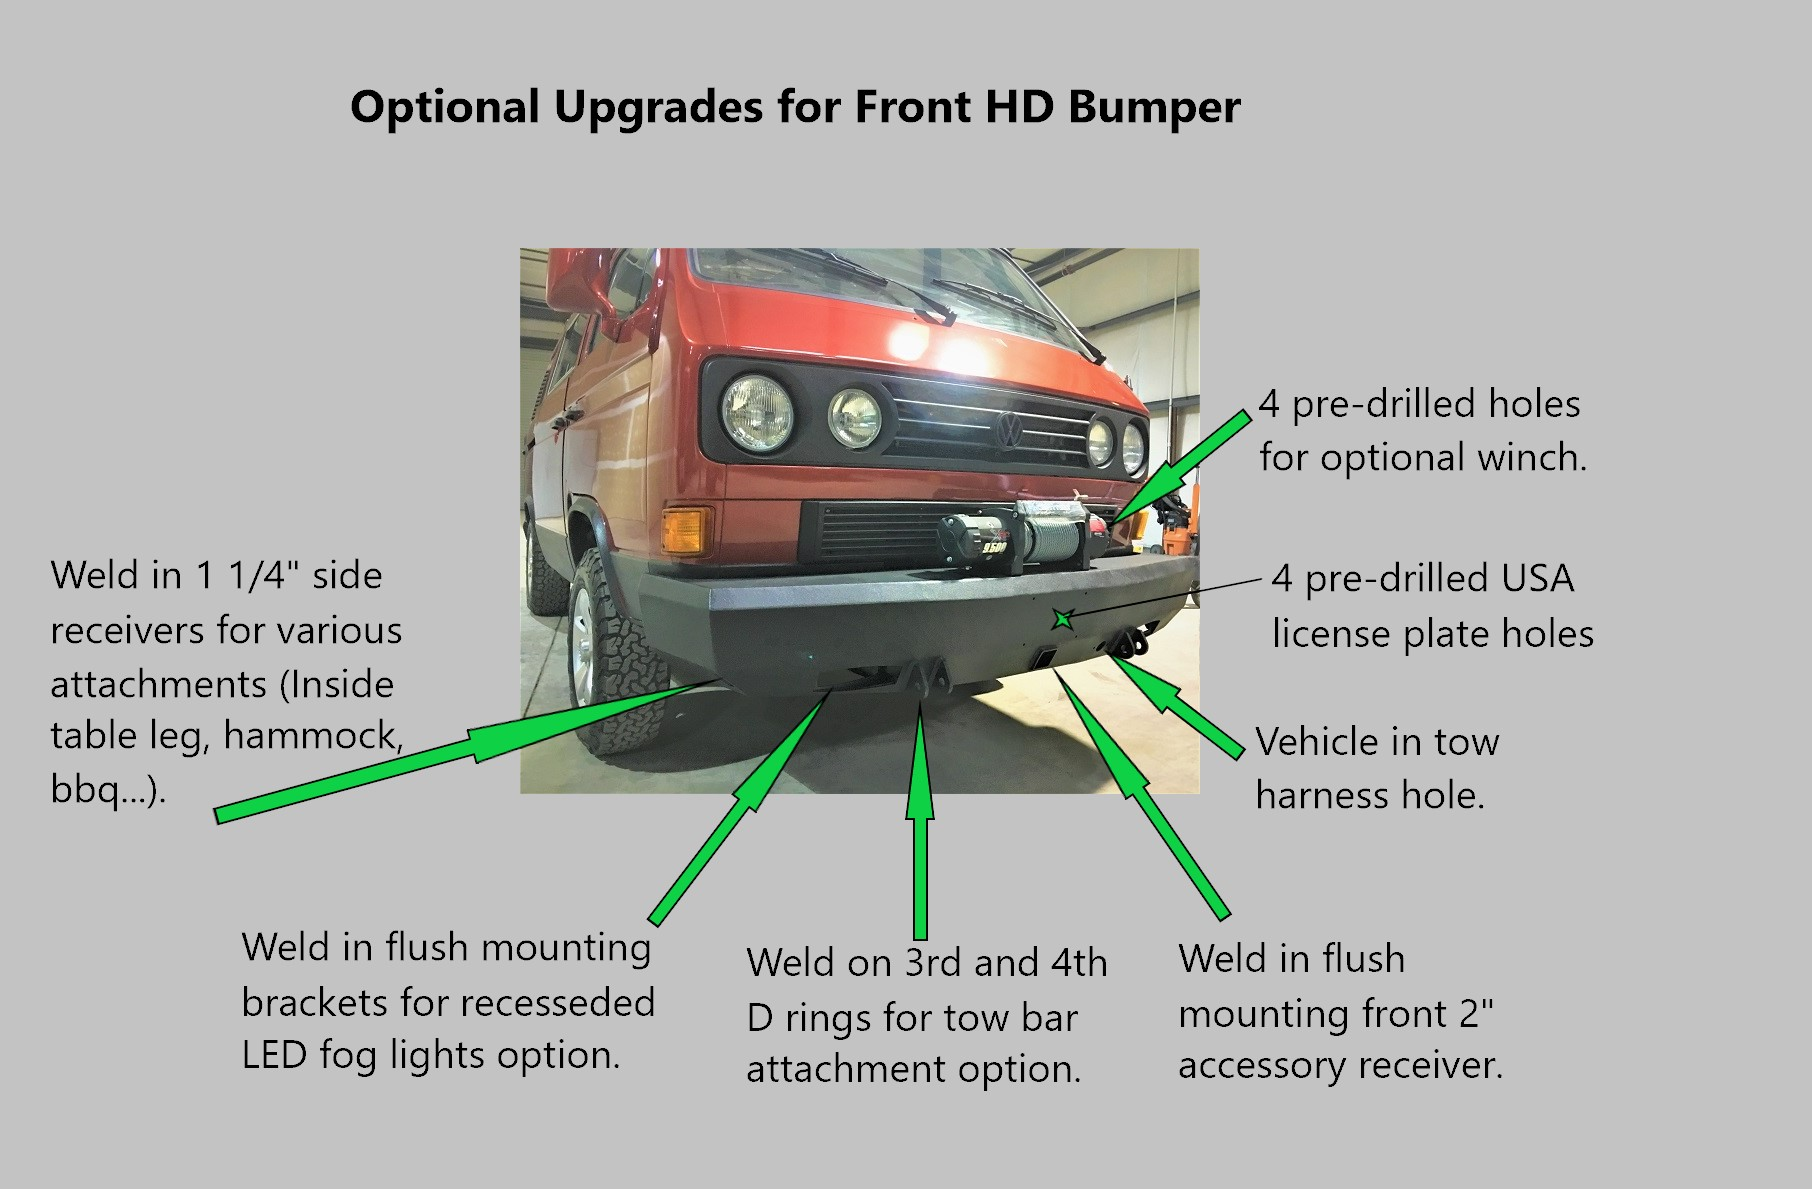 Volkswagen Westfalia Custom Bumpers Wiring Kit Instructions Westy World Heavy Duty Front Bumper